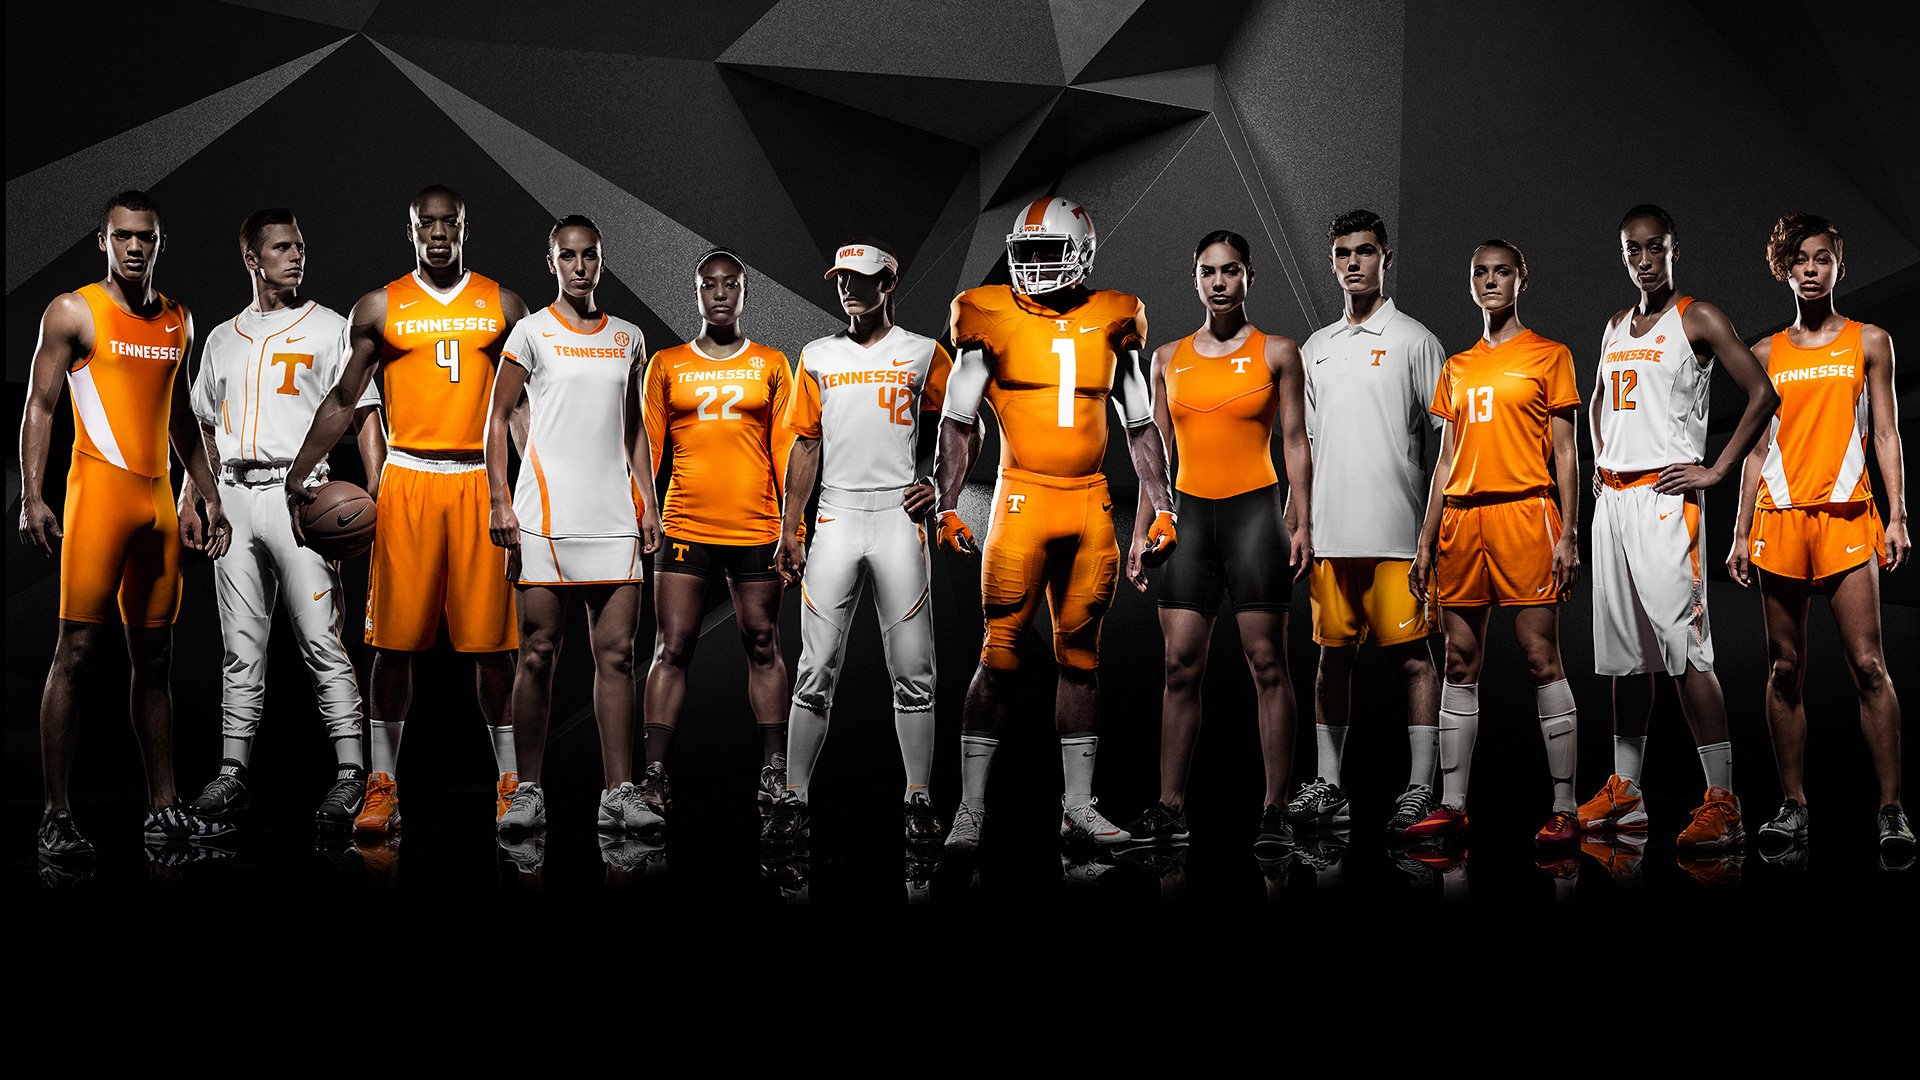 Kentucky Basketball And Football Getting New Uniforms: Nike Reveals Tennessee's New Football And Basketball